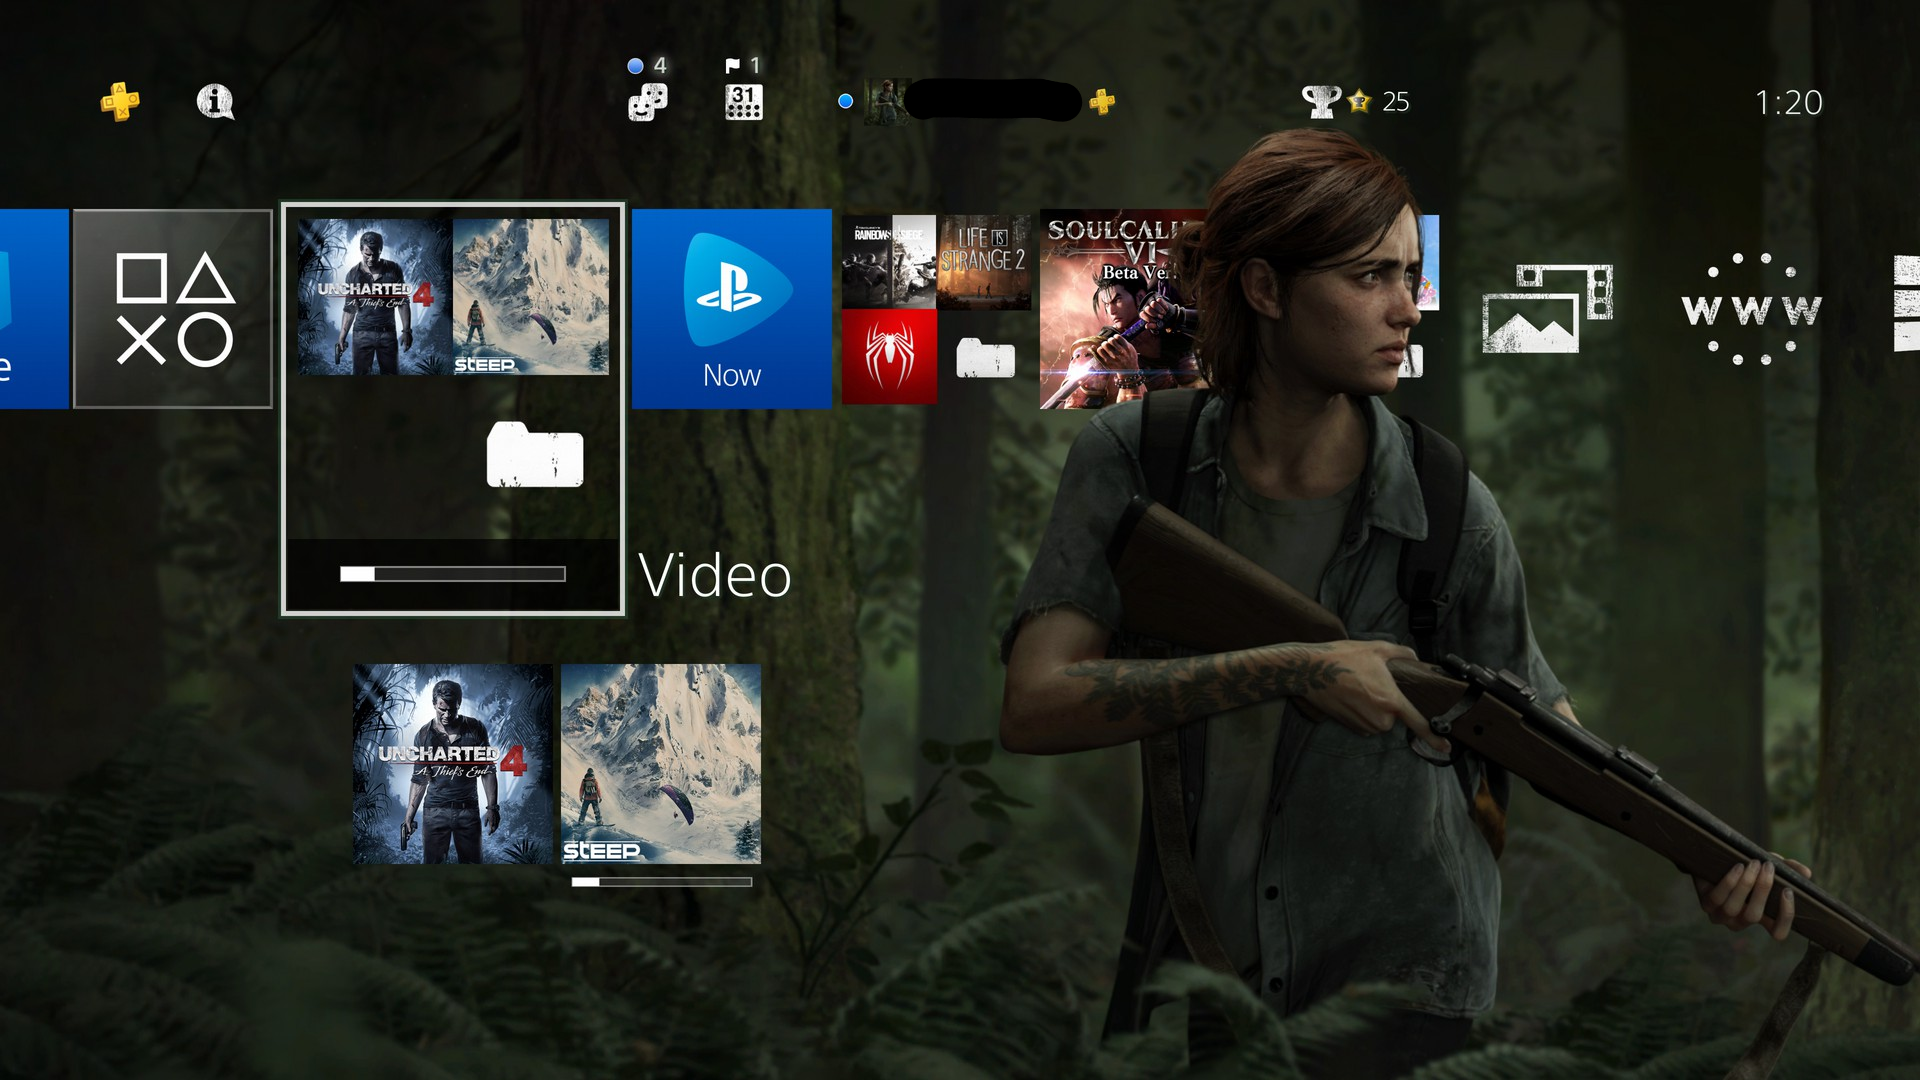 [image] The Last Of Us Part Ii Ellie Theme Overlaps - Last Of Us 2 Theme , HD Wallpaper & Backgrounds